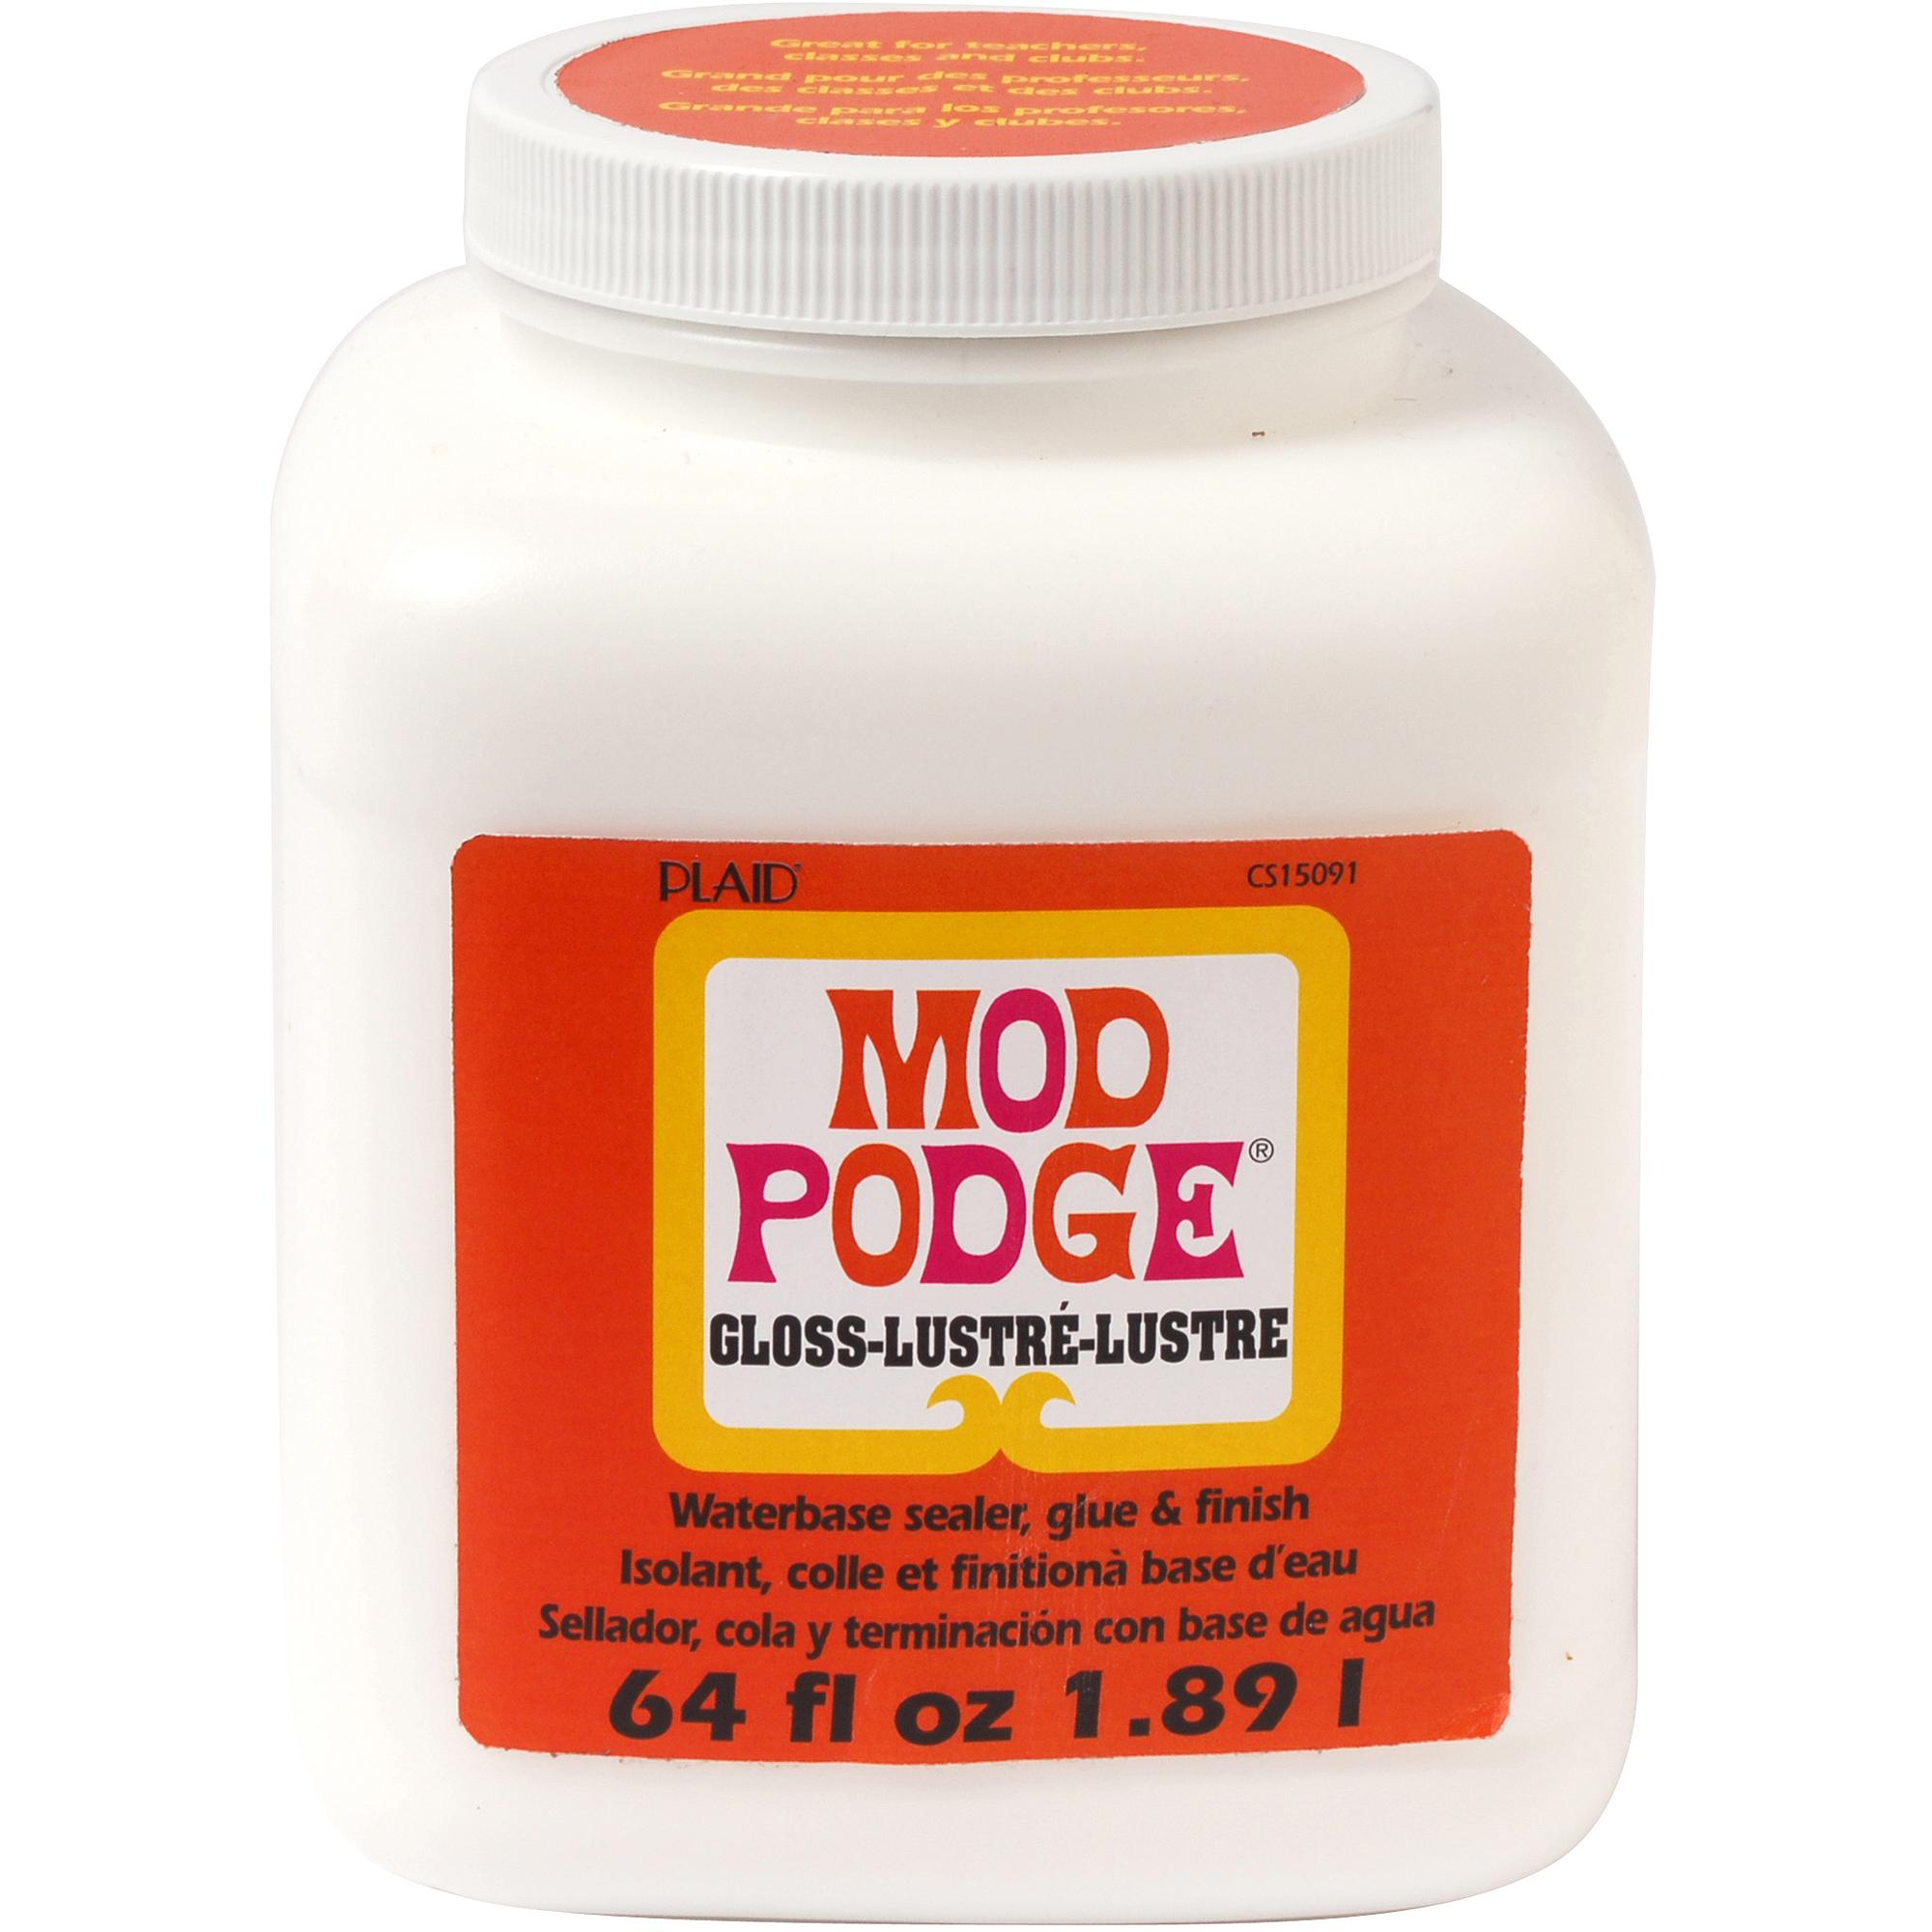 Mod   Podge Gloss, Glue, Sealer and Finish for Decoupage by Plaid, 64 oz.